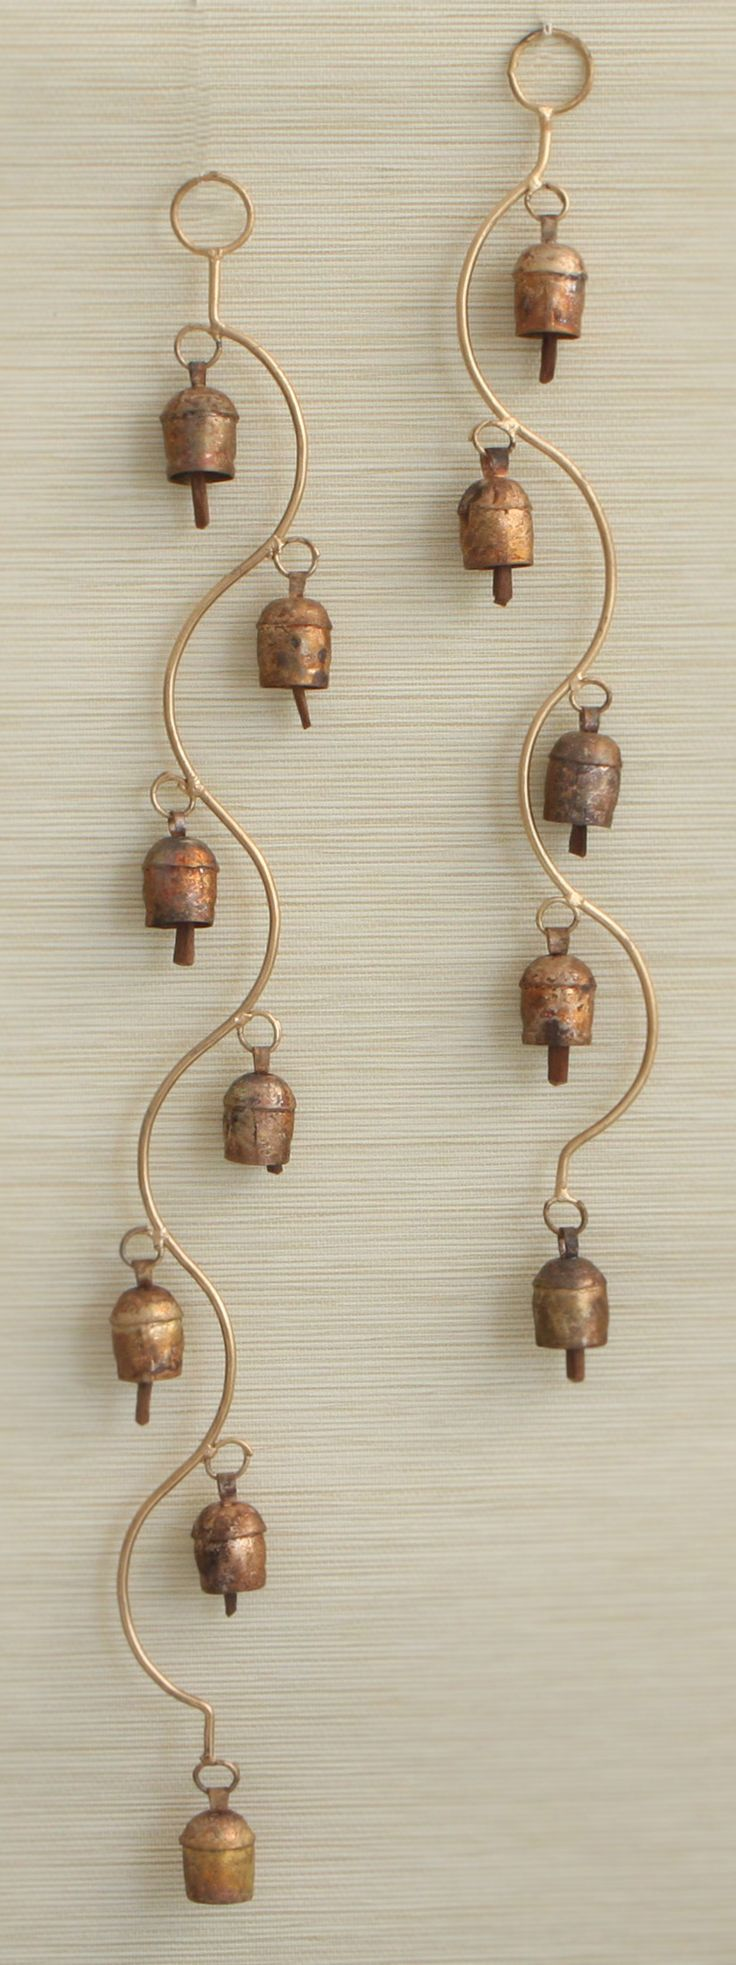 Bring music to your surroundings with this long and curving wind chime hand crafted by artisans in India.